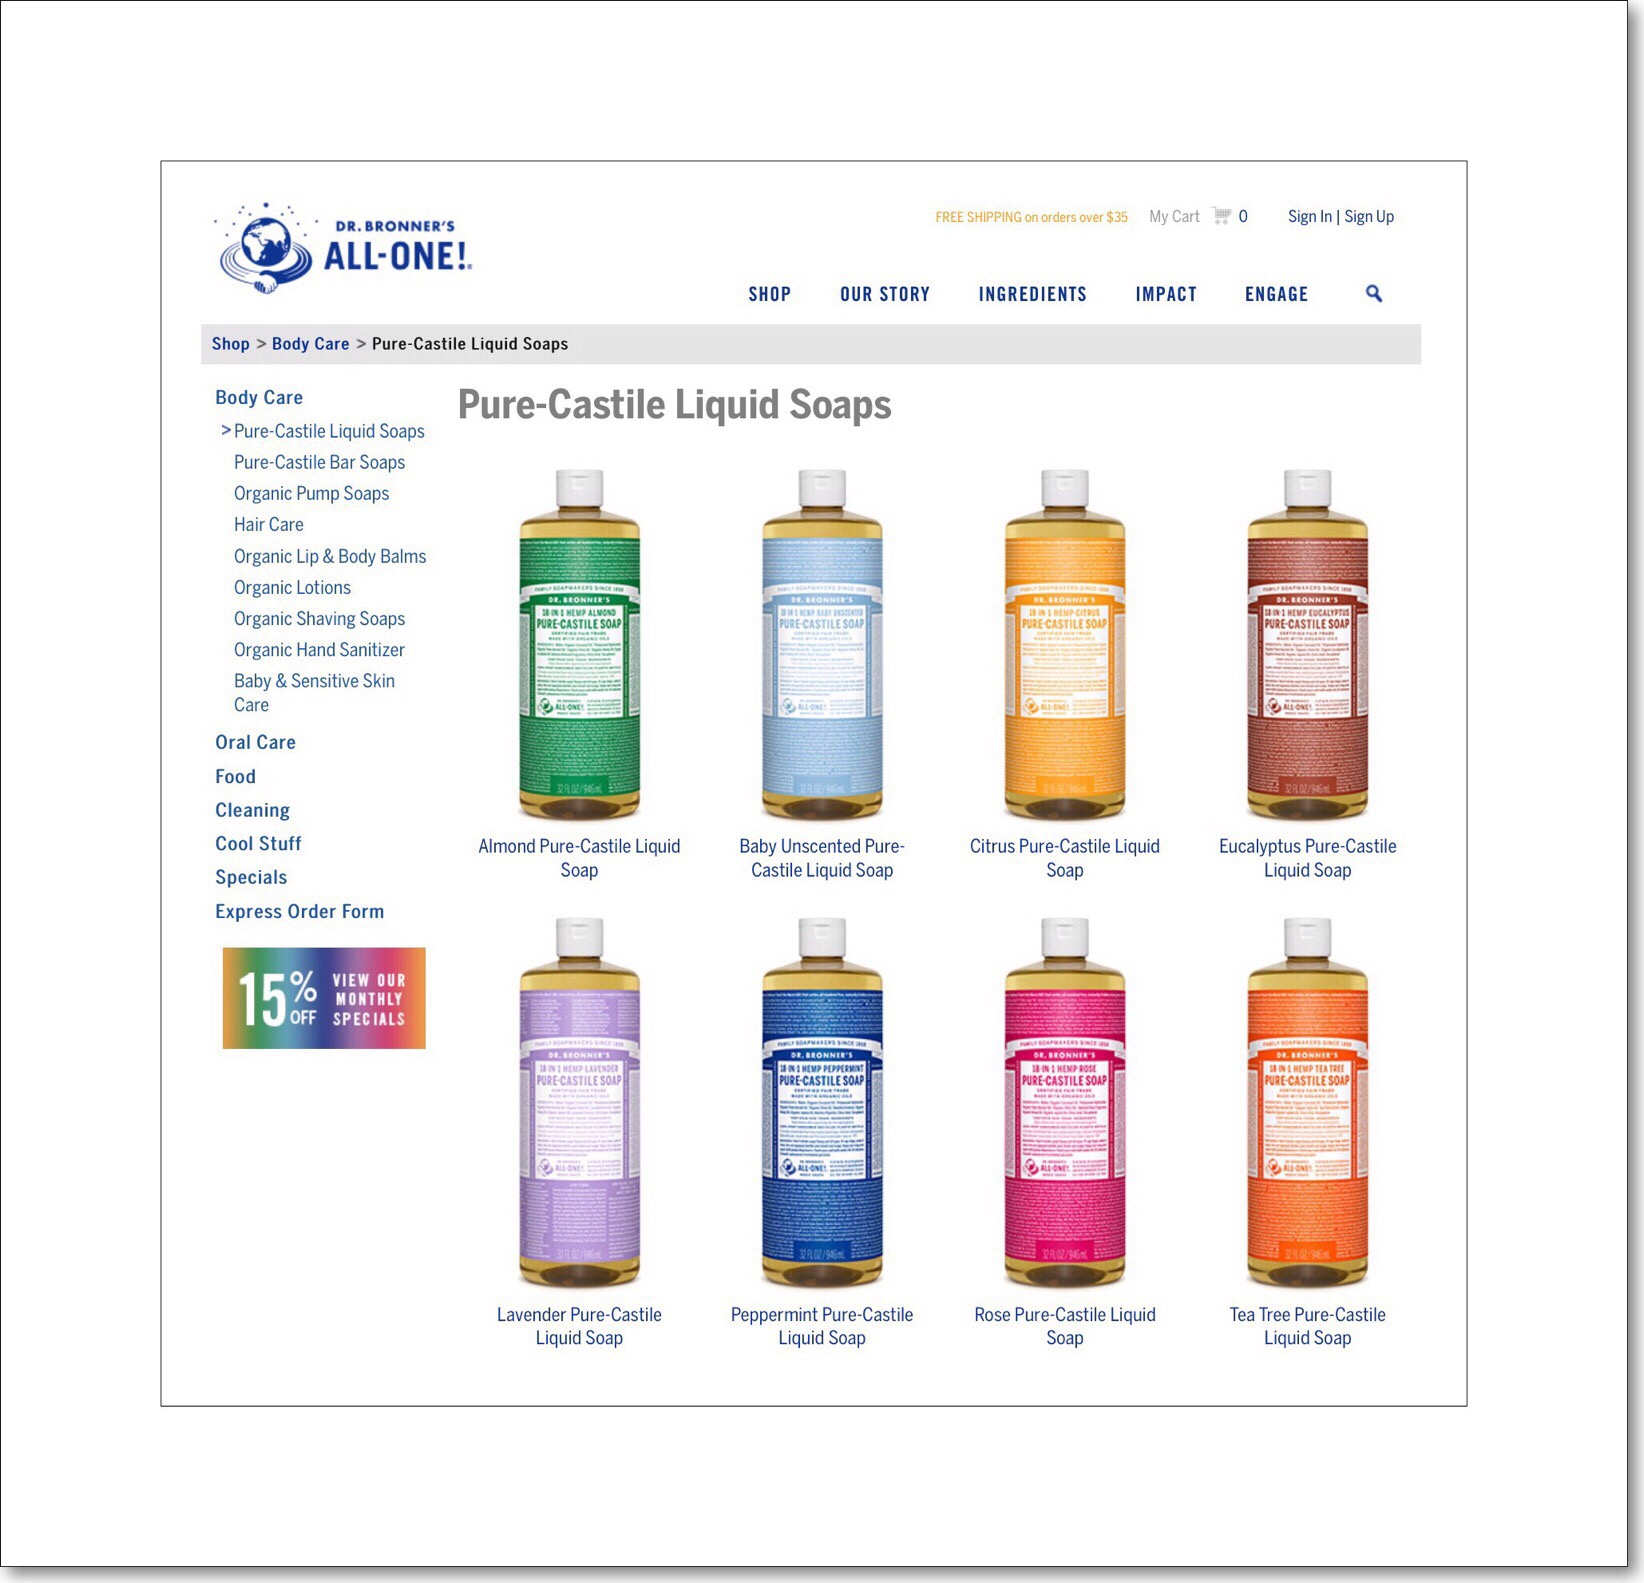 The entire product line of Dr. Bronner's Liquid Castile Soad